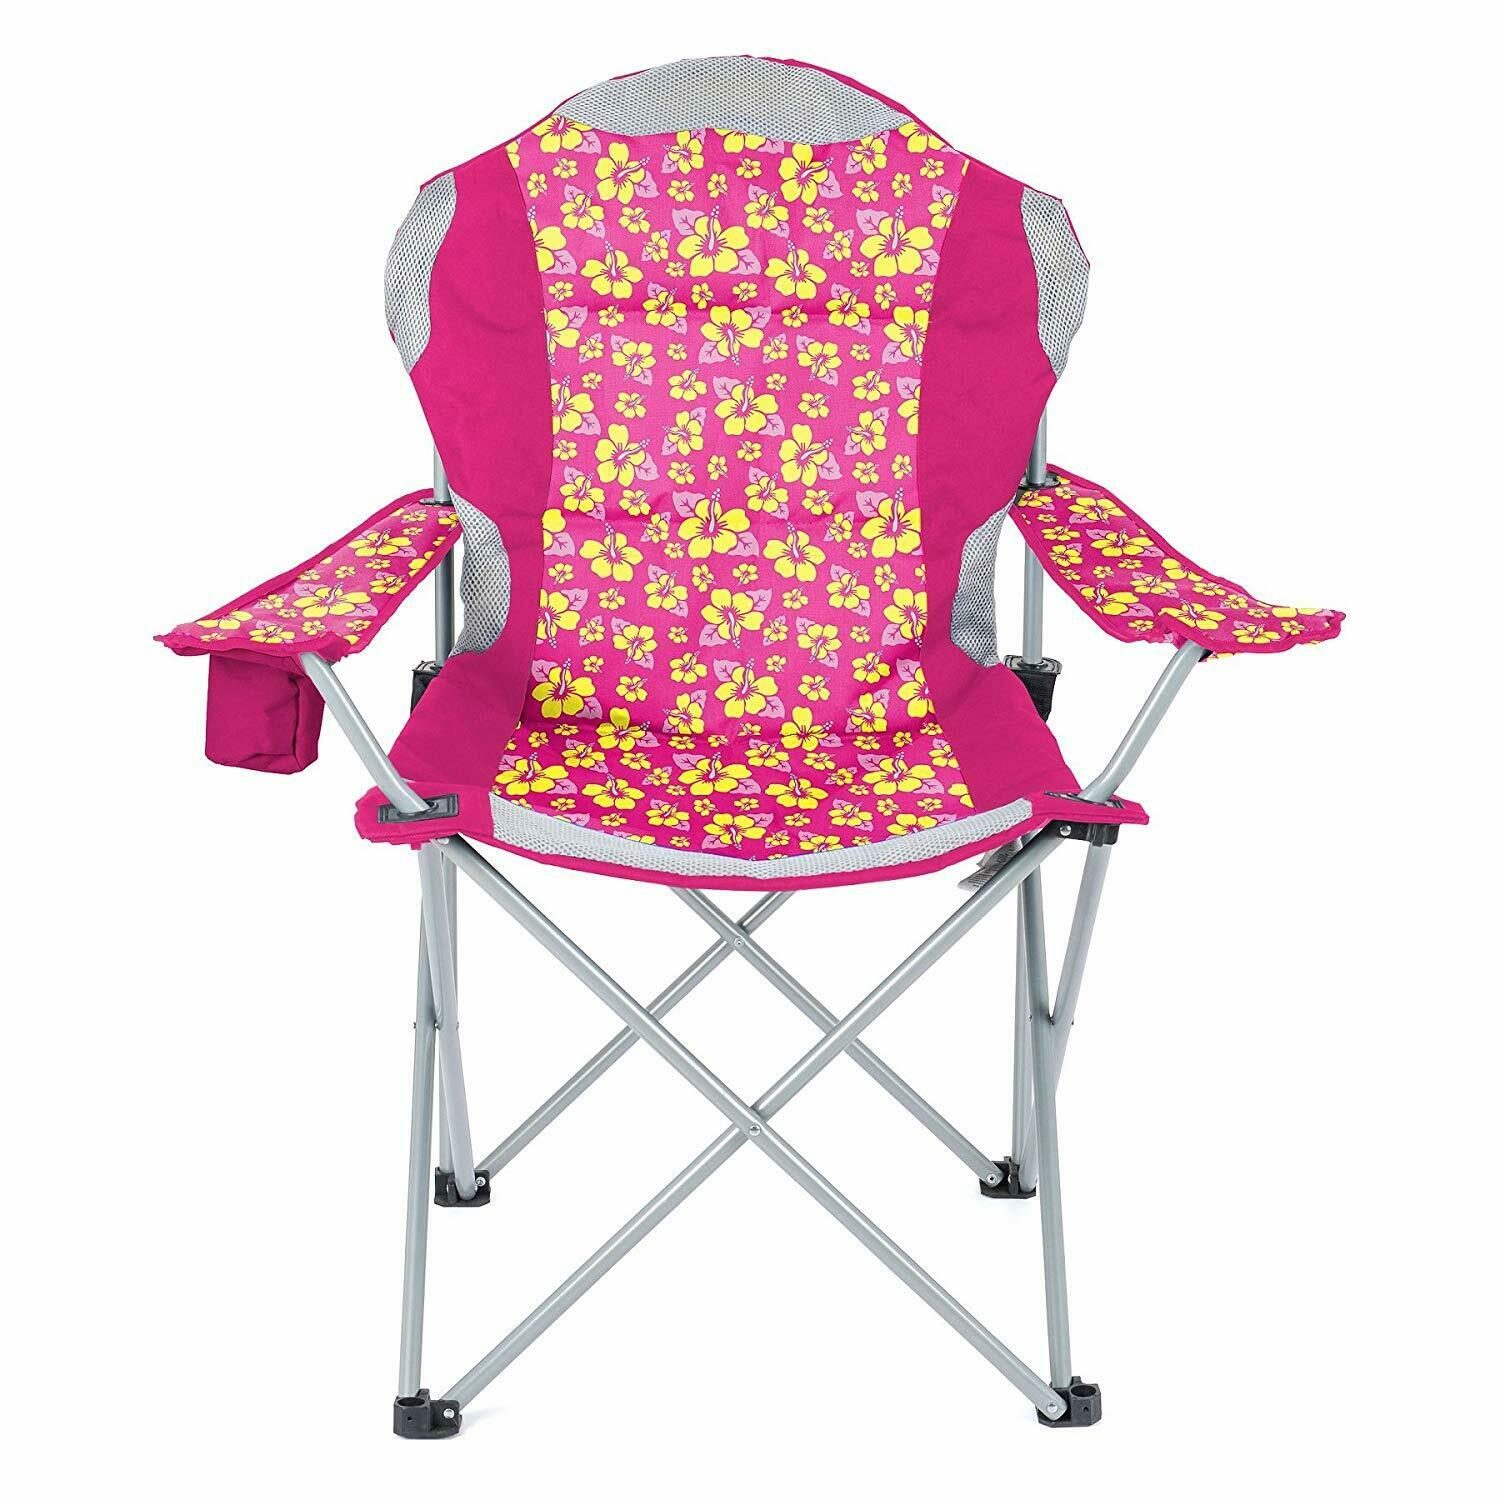 Yello Deluxe Padded Beach Folding Camping Chair With Cup Holder Pink